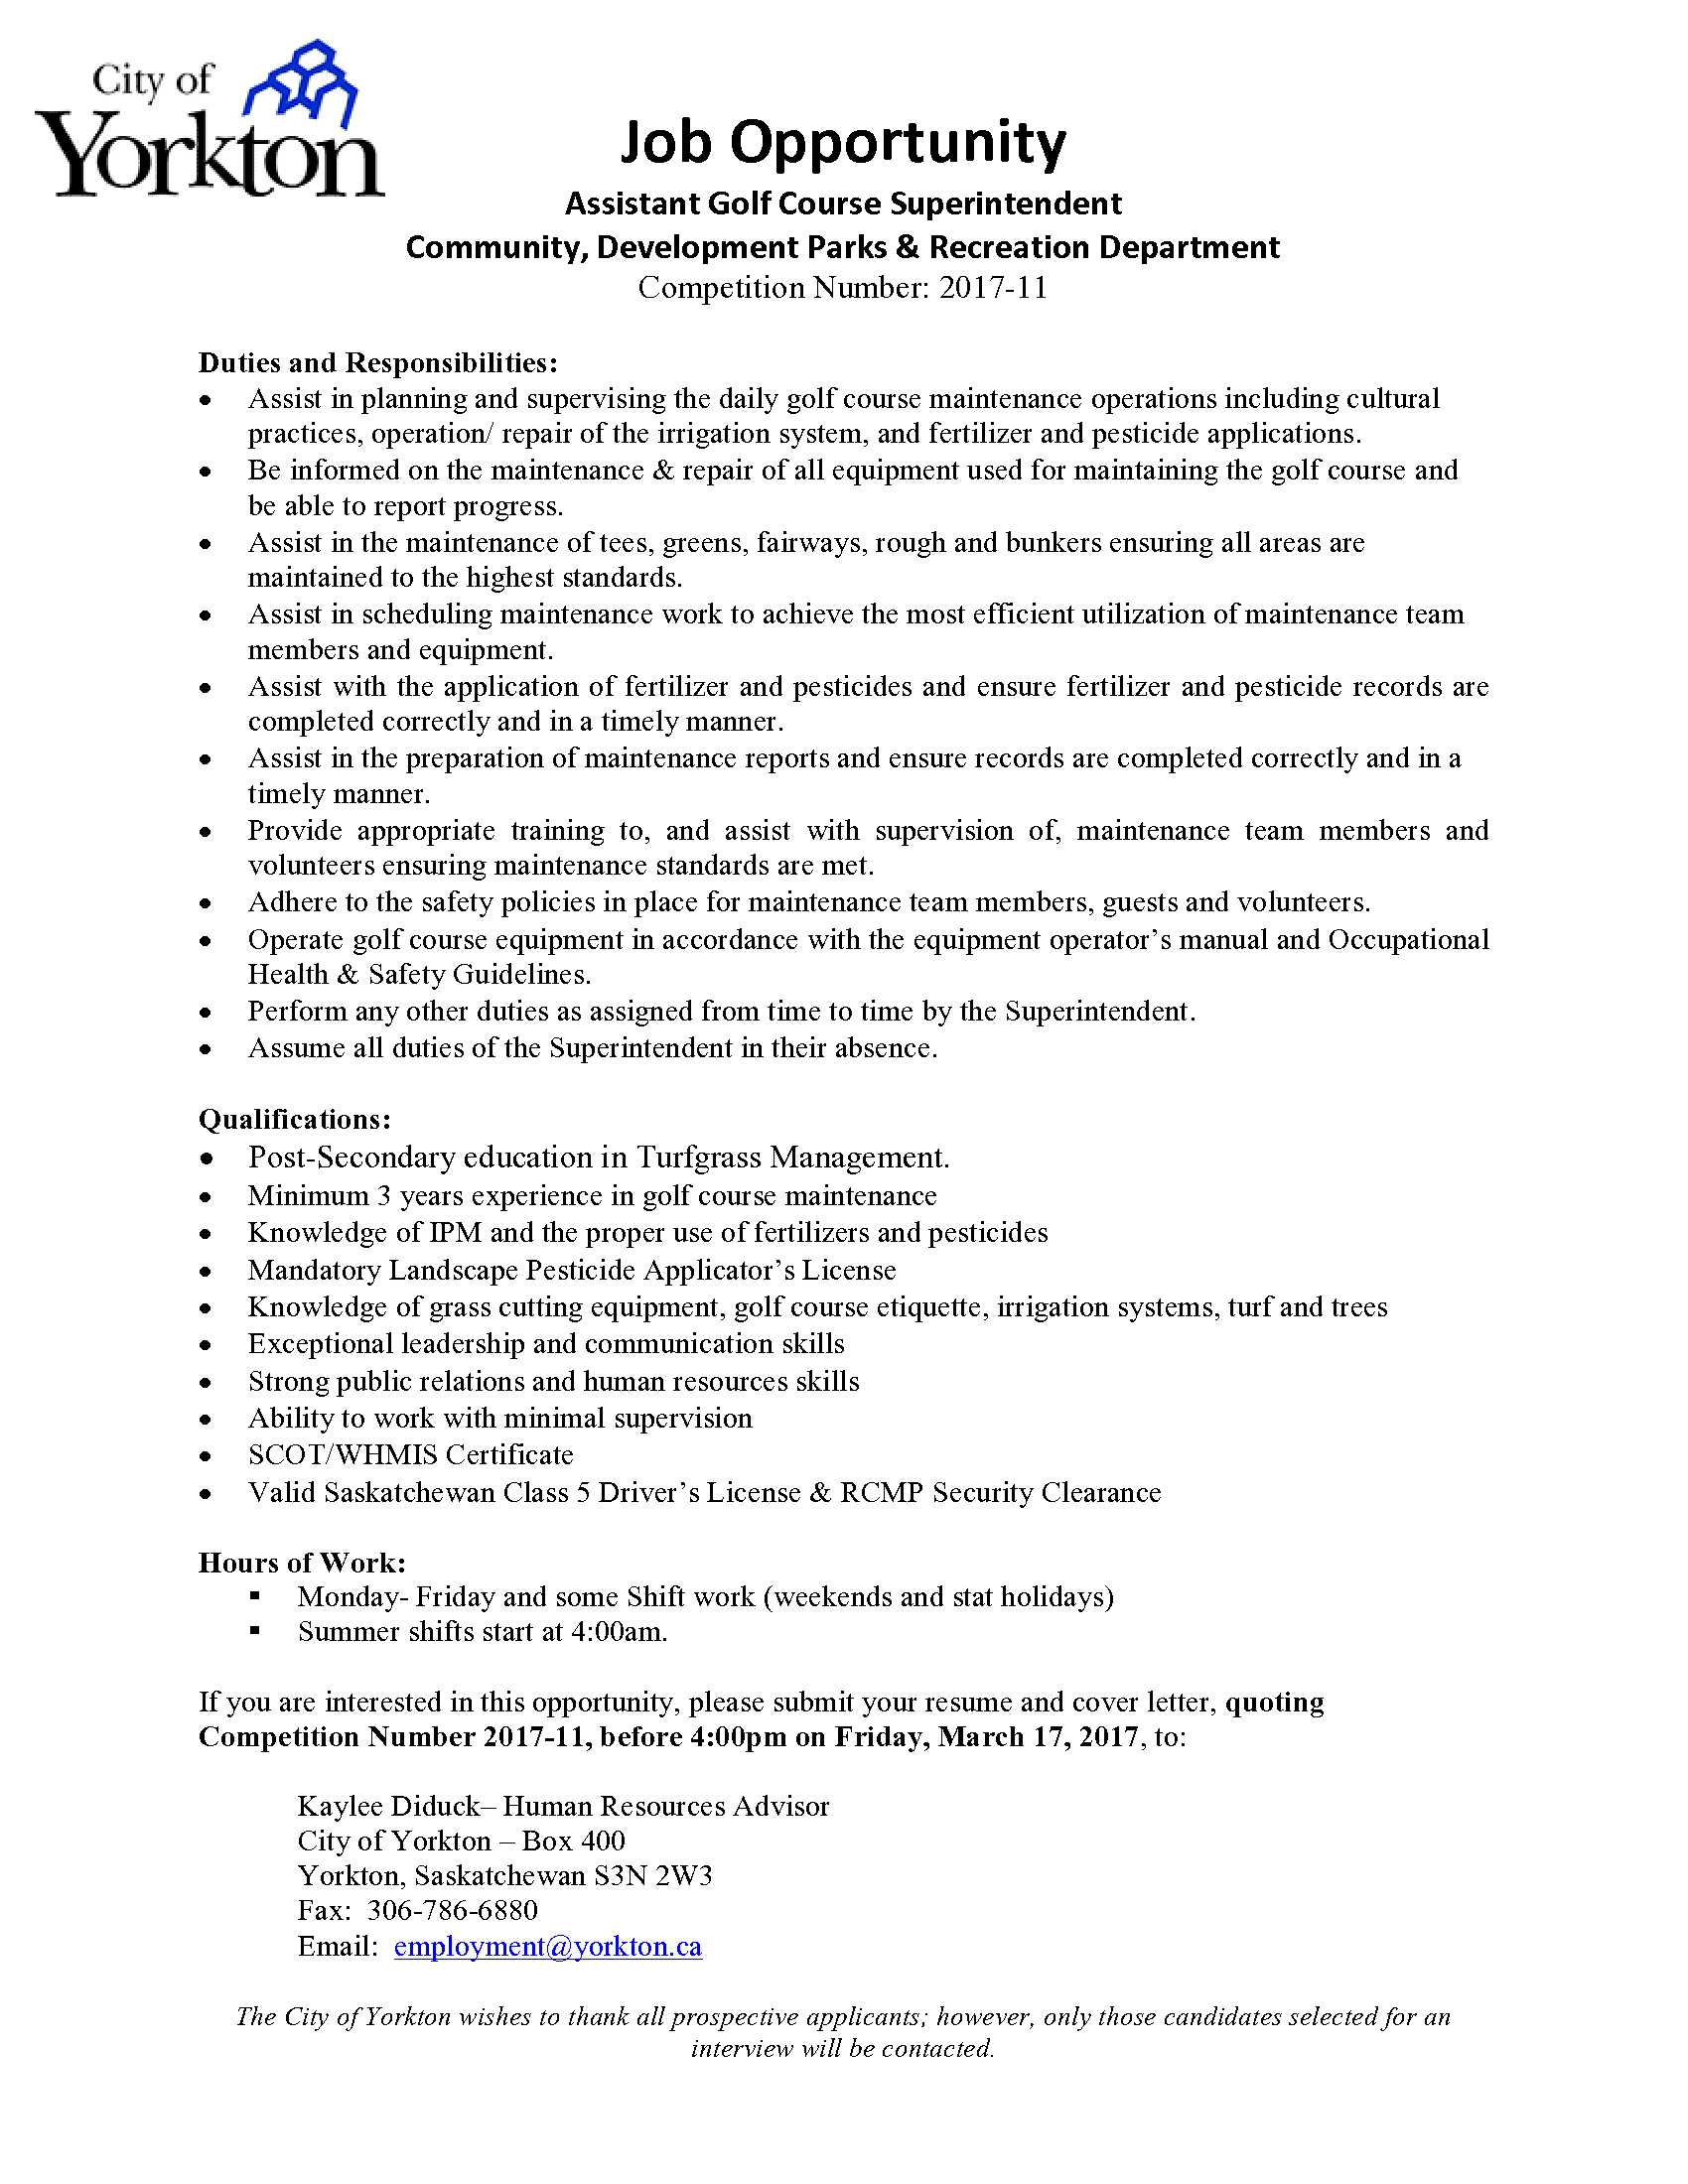 assistant golf course superintendent cover letter Check it out on golf course superintendents association of medinah country club golf course assistant superintendent please email cover letter and resumes.